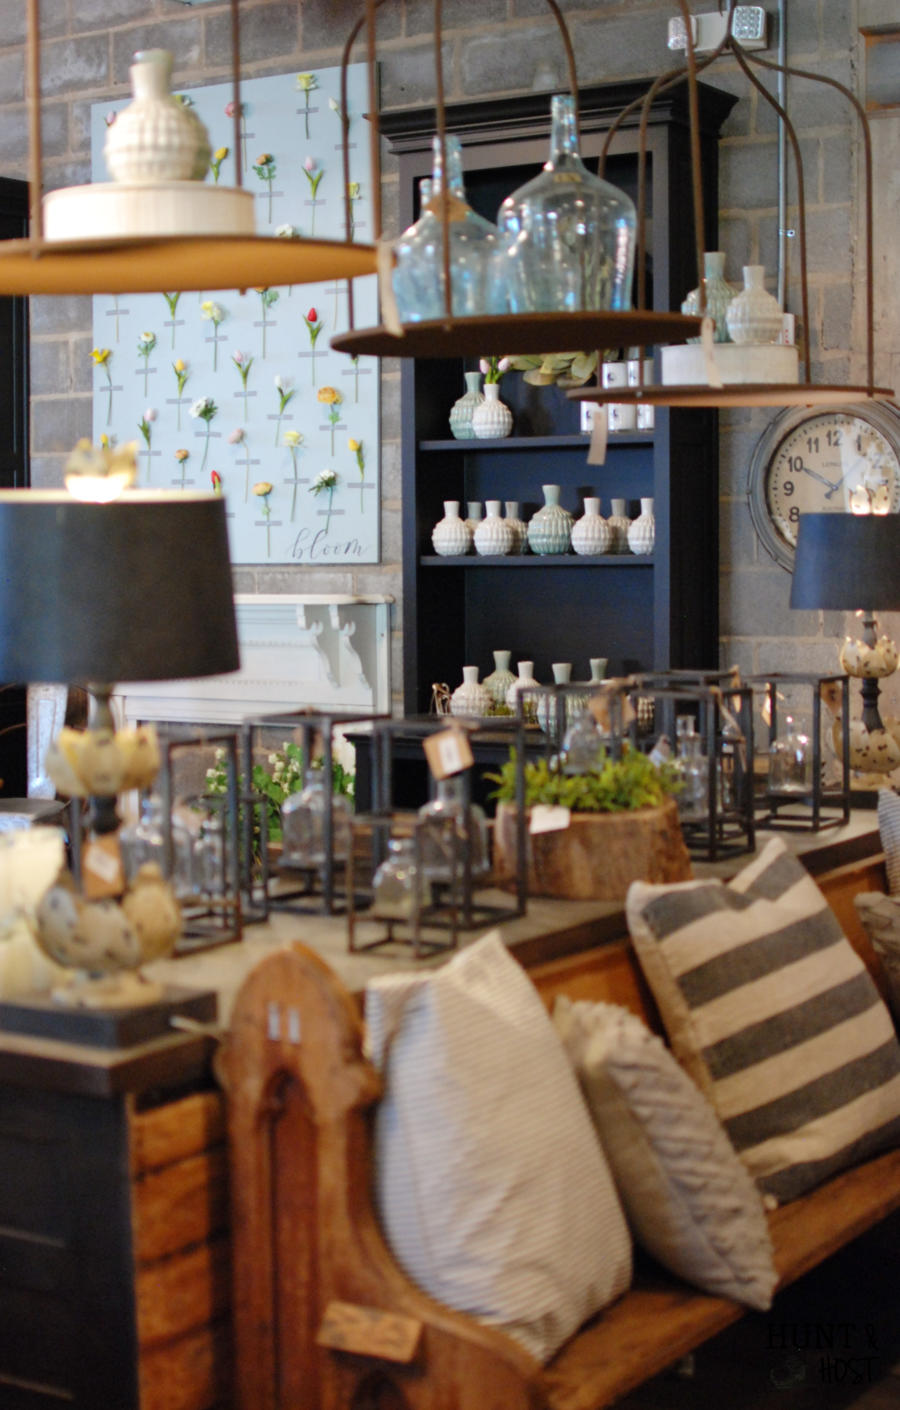 Magnolia Market In Waco Tx From Fixer Upper Fameis It With Furniture Store  Waco